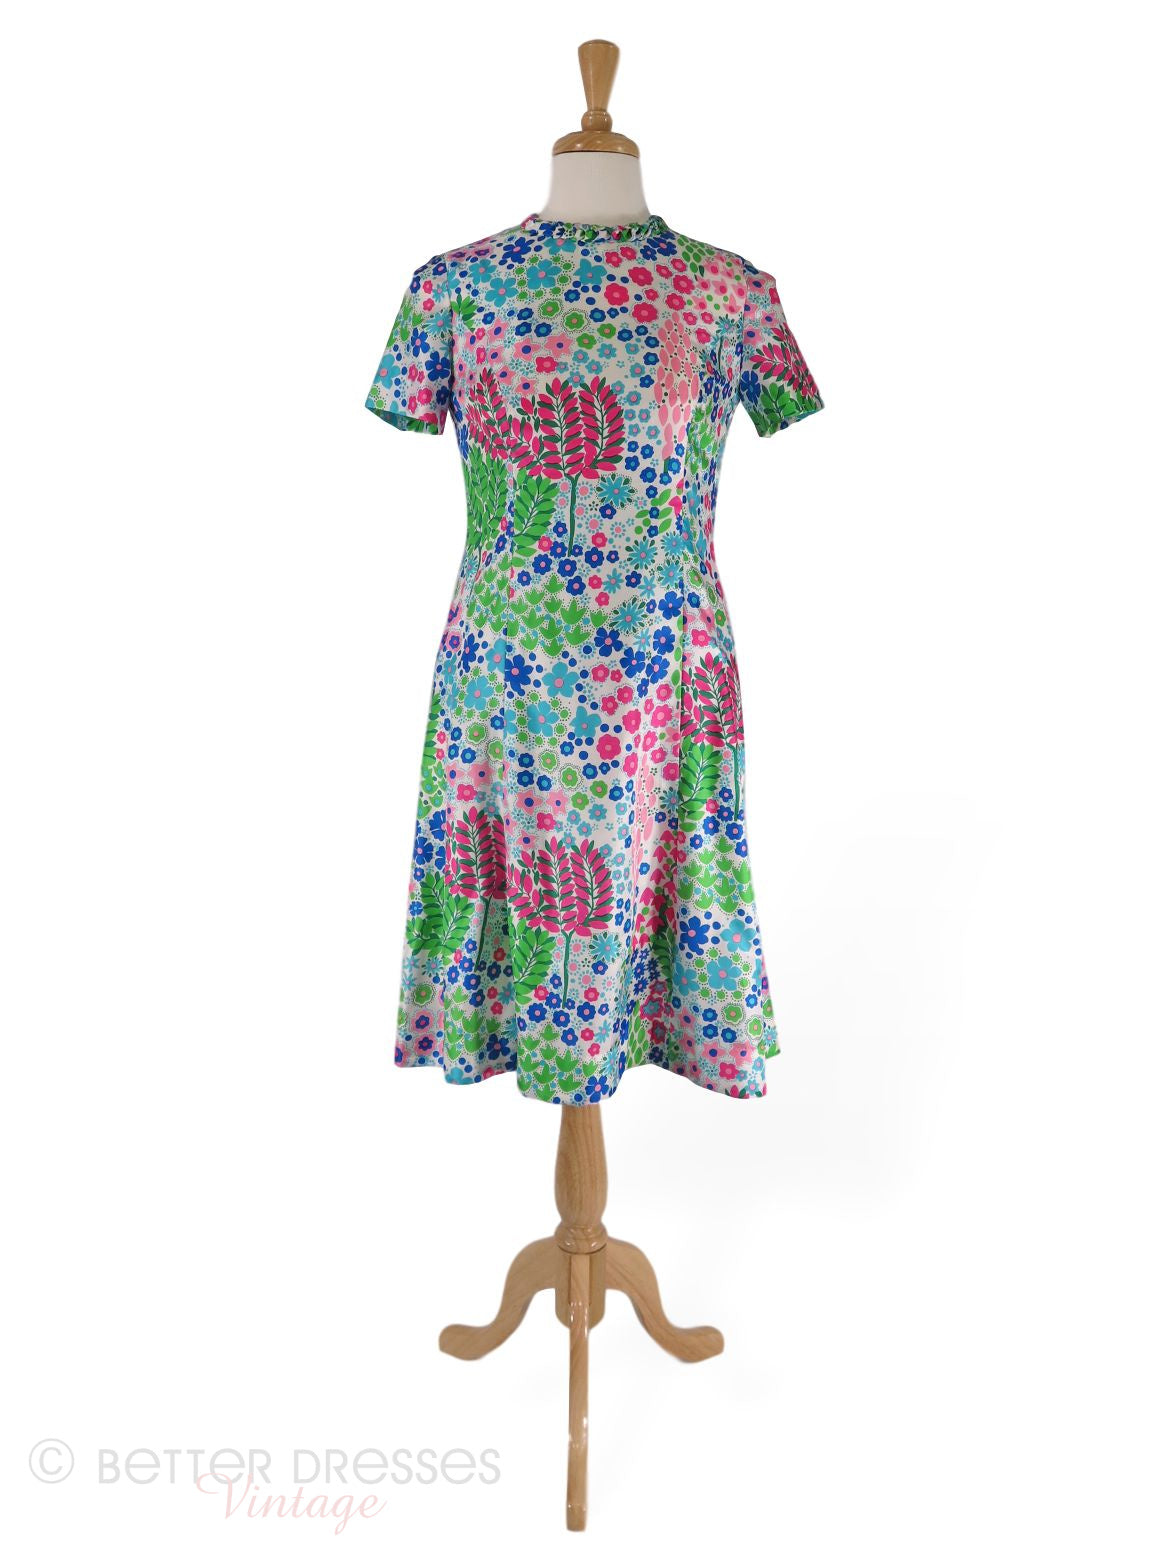 6308745c0f Women s Vintage Clothing and Accessories – Better Dresses Vintage